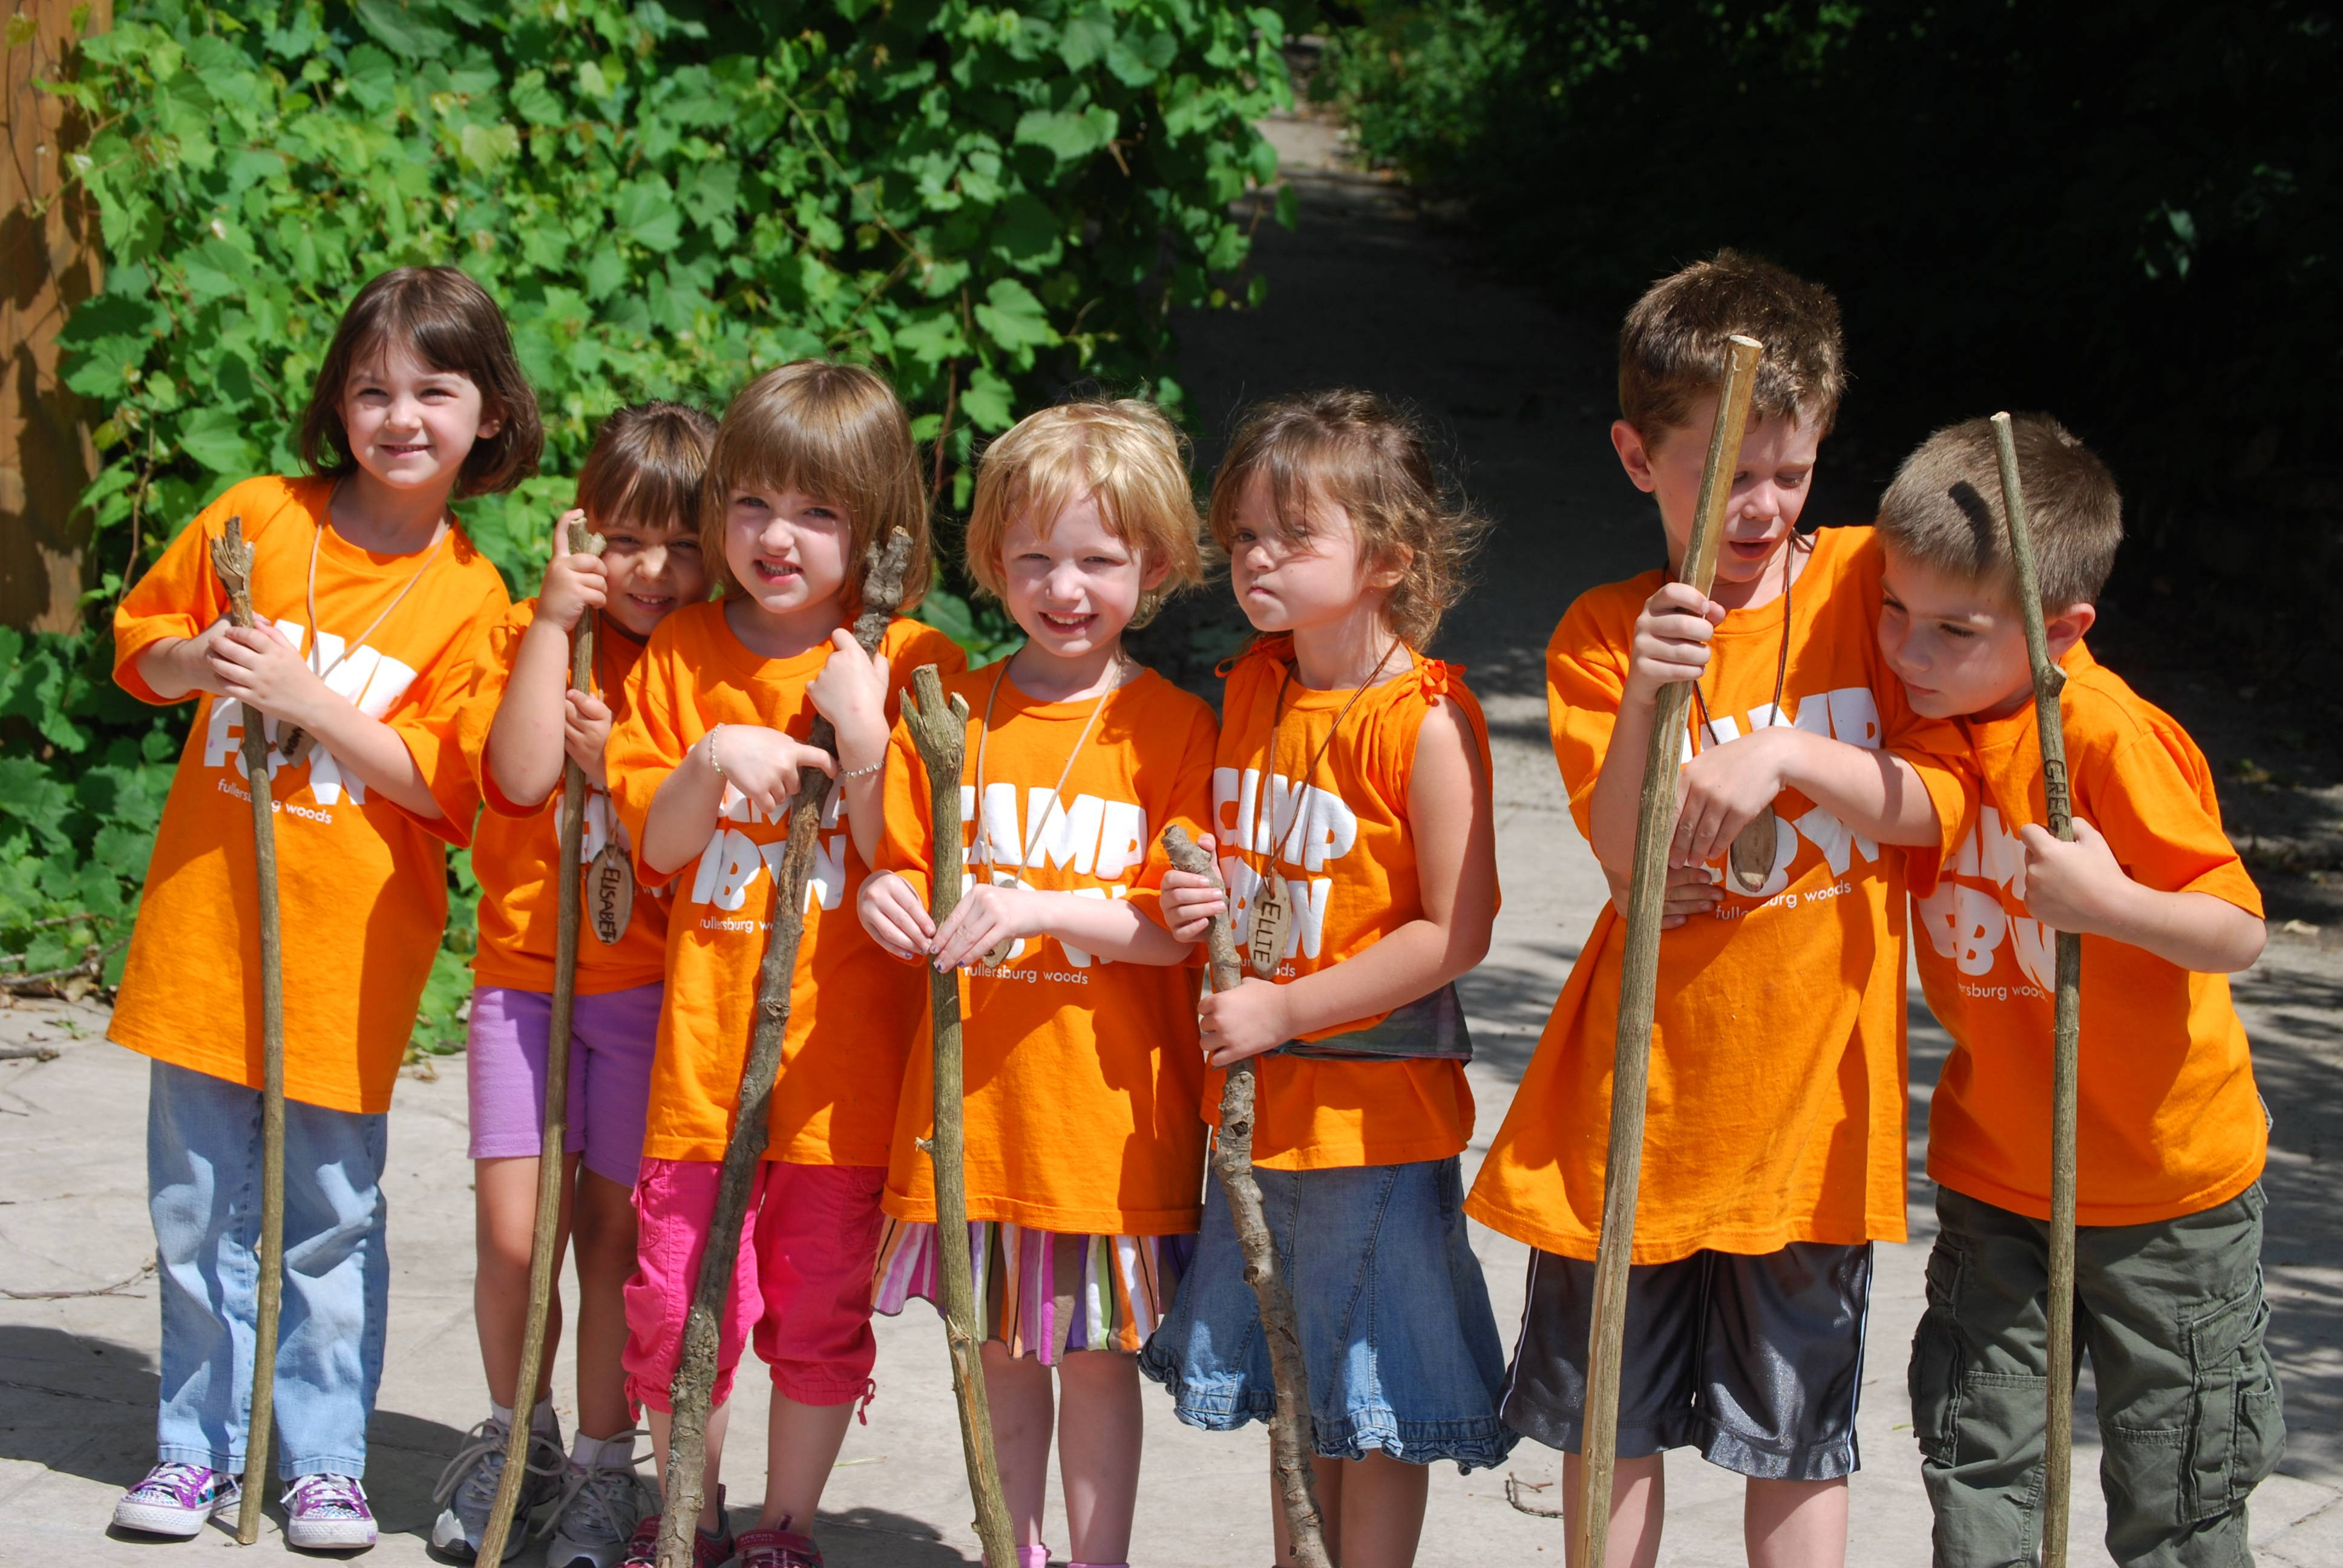 Kids can experience all sorts of outdoor activities during day camps this coming spring and summer in DuPage forest preserves.